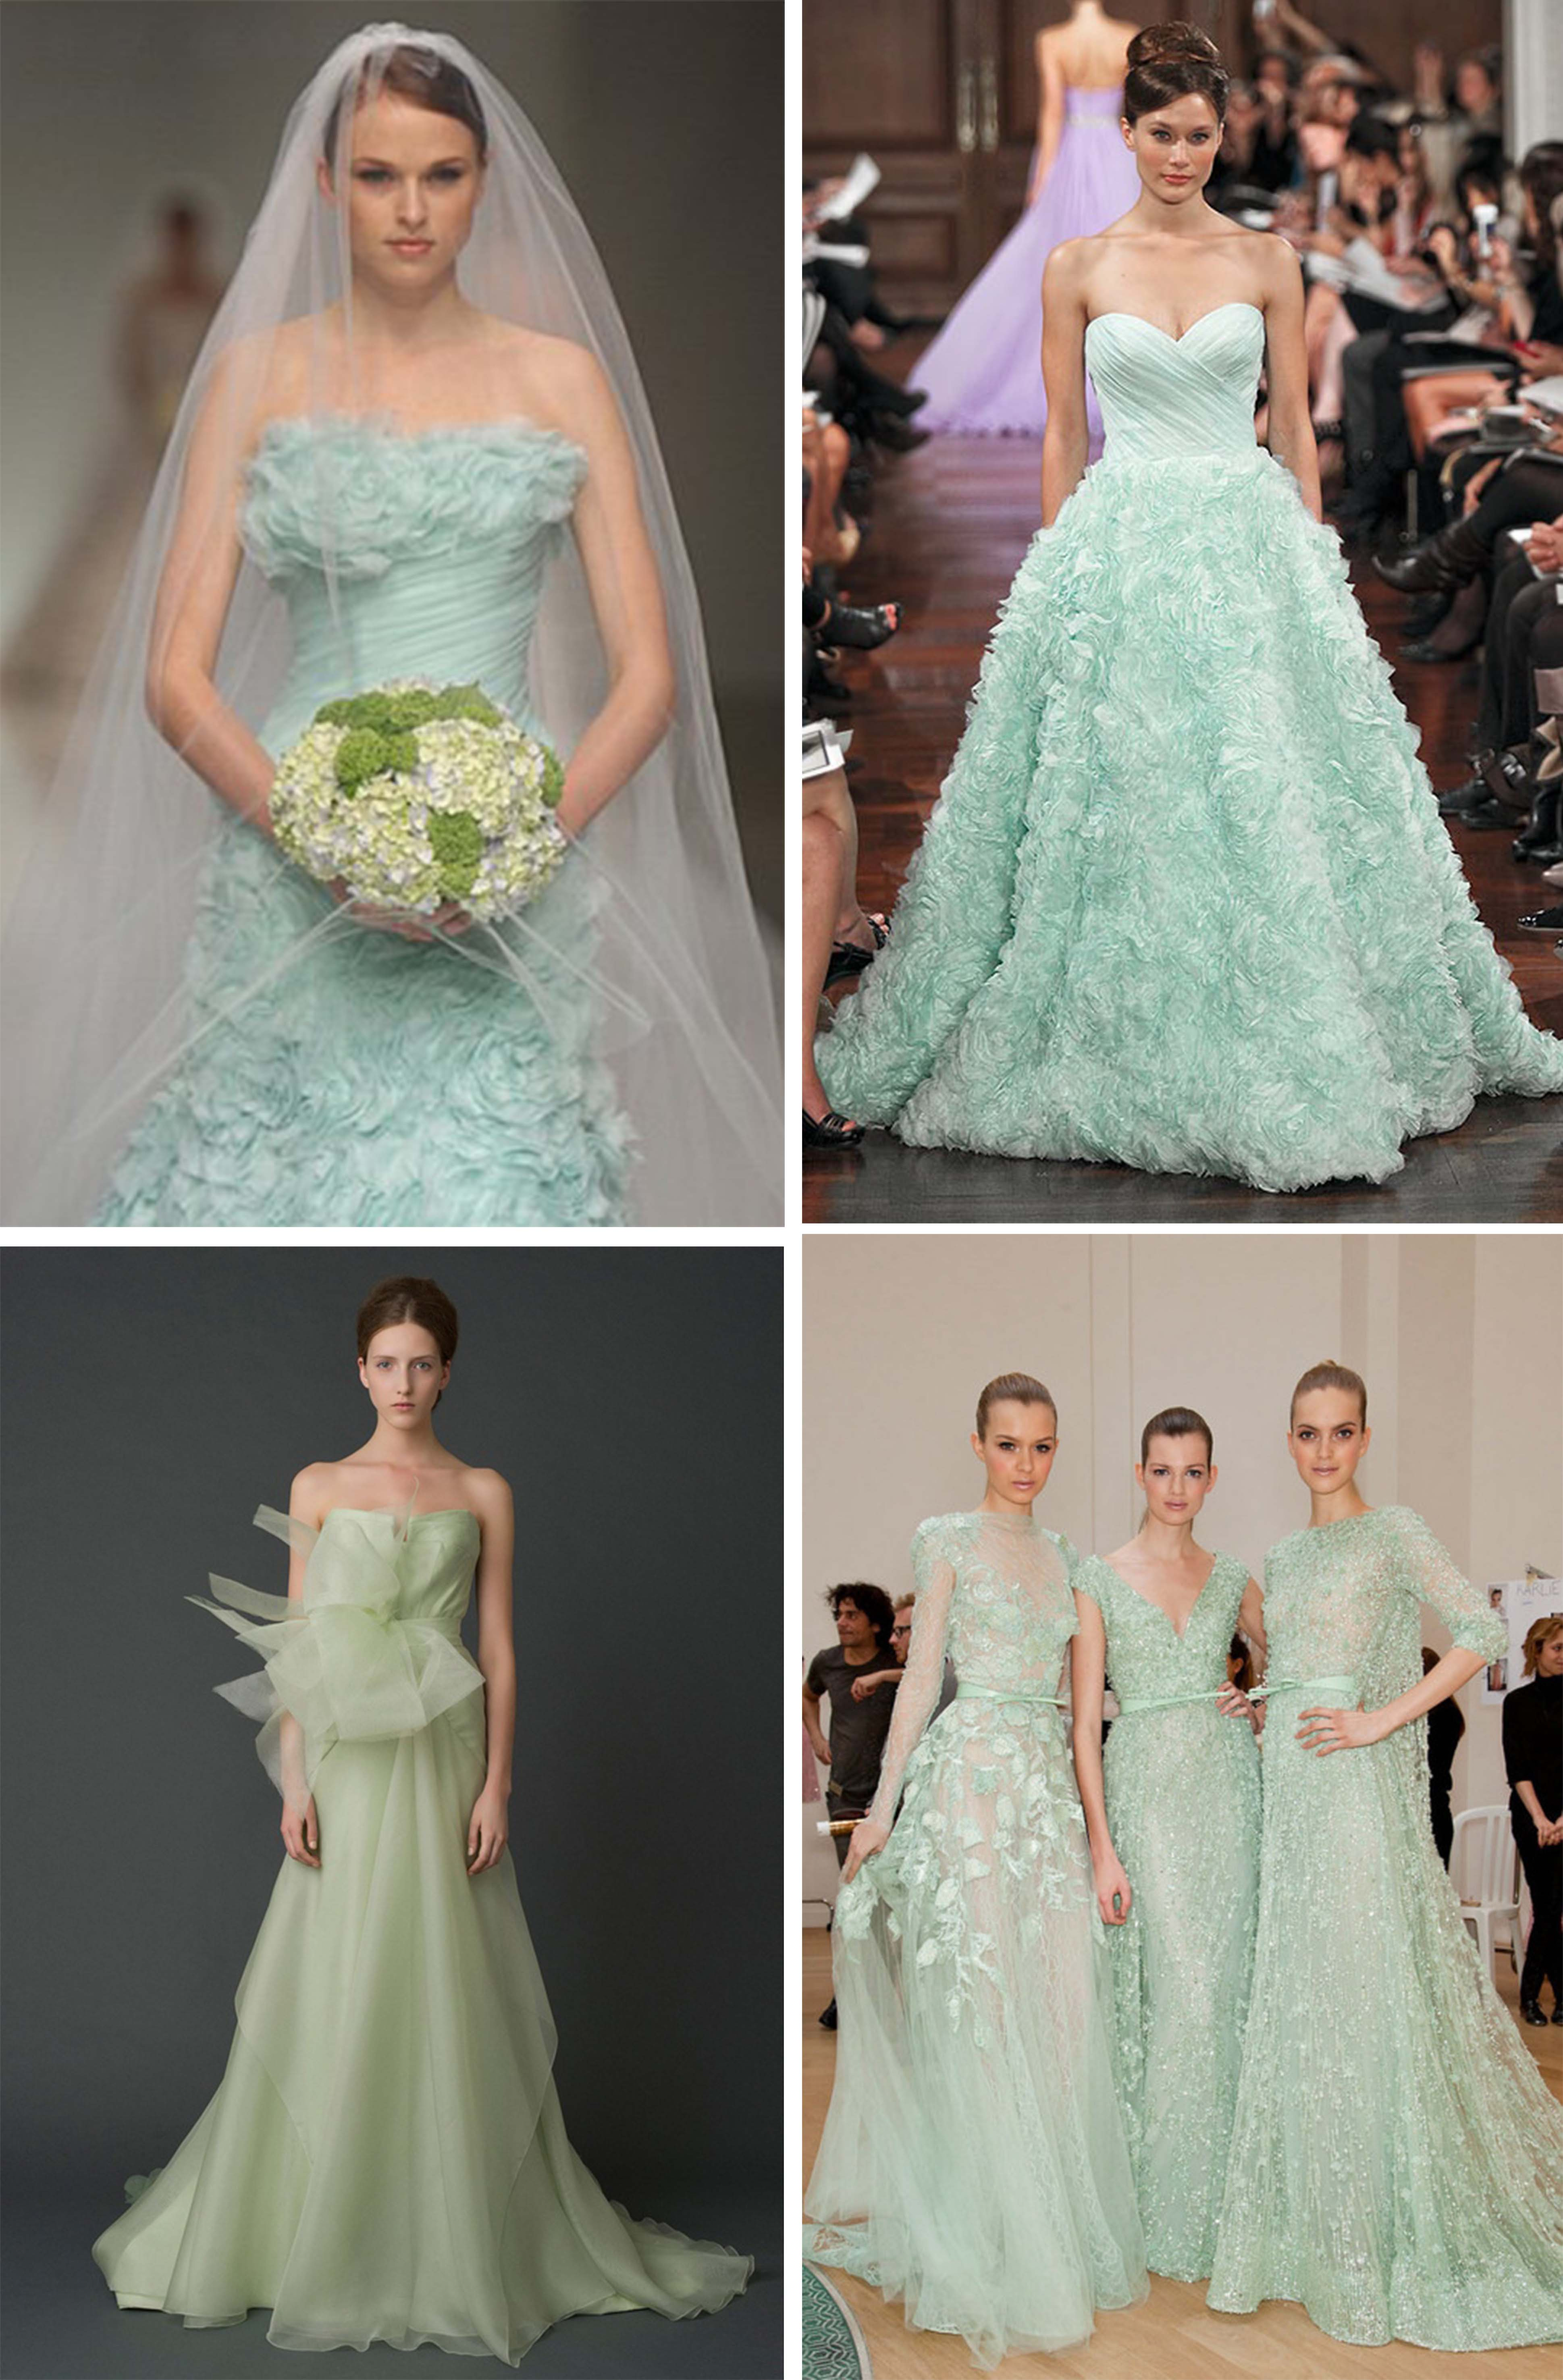 Mint green wedding dresses archives happyinvitation mint green wedding dress ombrellifo Image collections